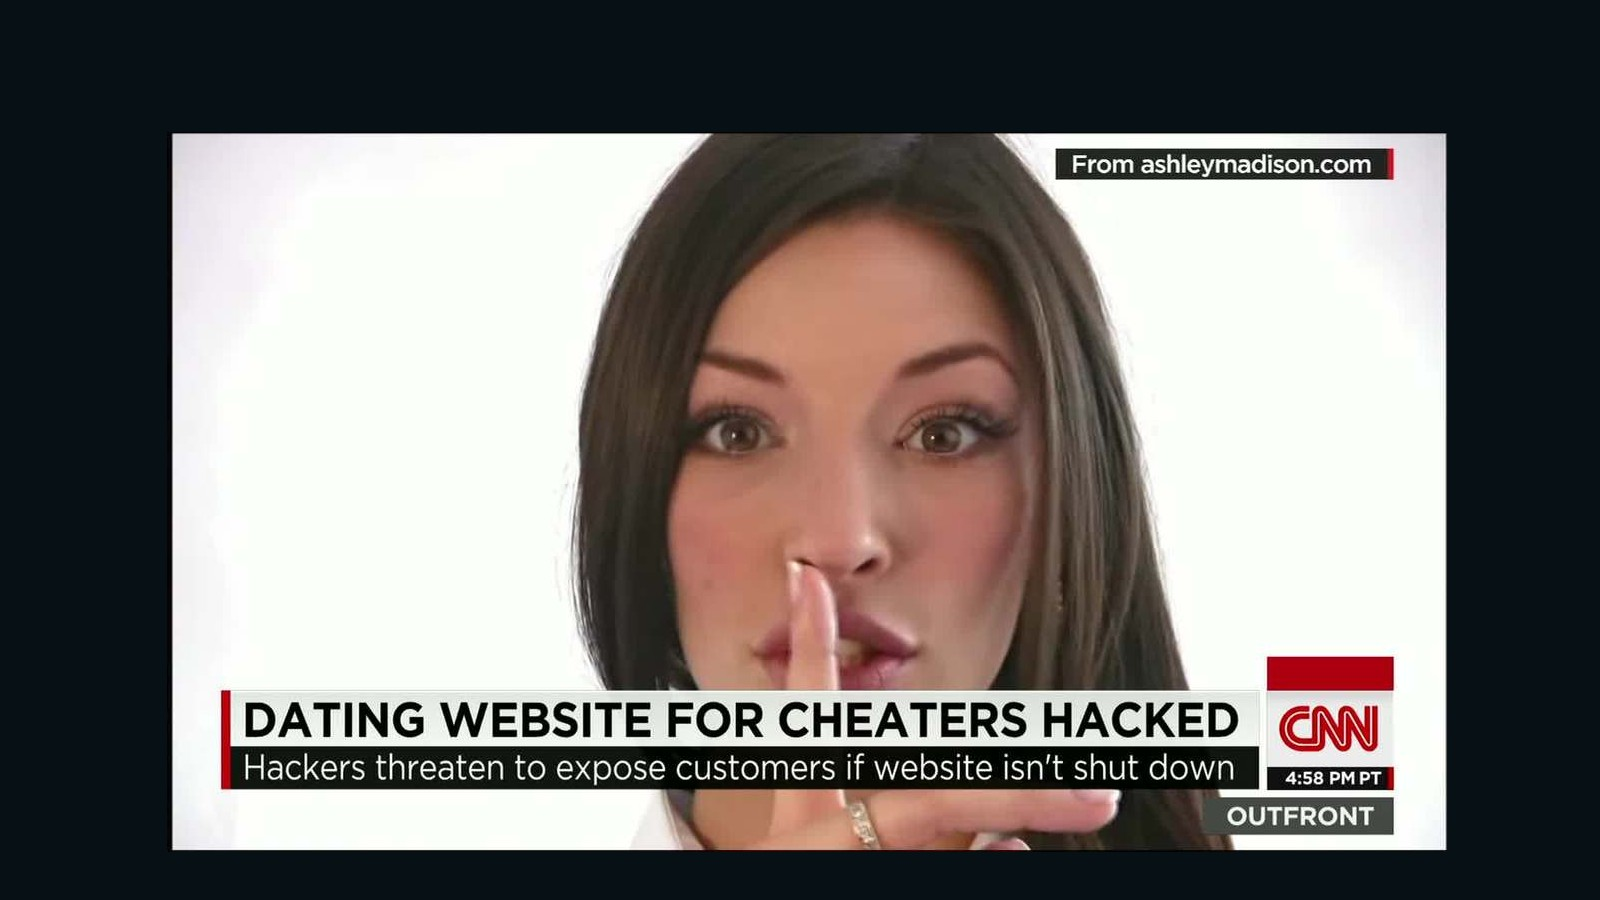 Exposing cheaters website dating